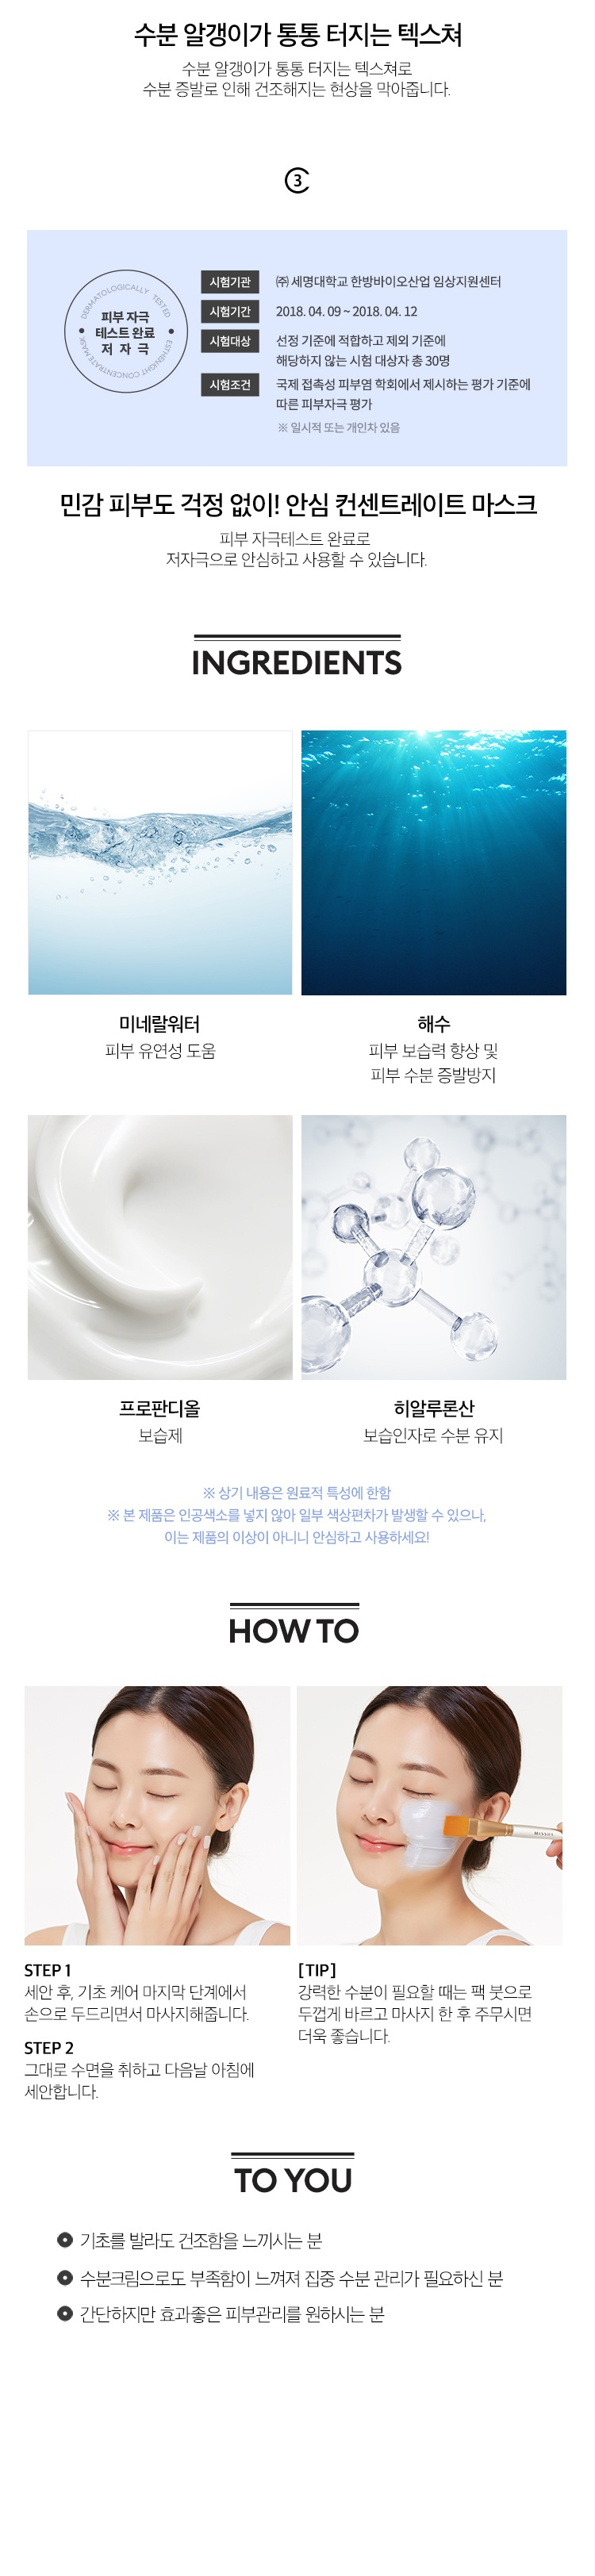 Missha Esthenight Hydra Concentrate Mask korean skincare product online shop malaysia china india2